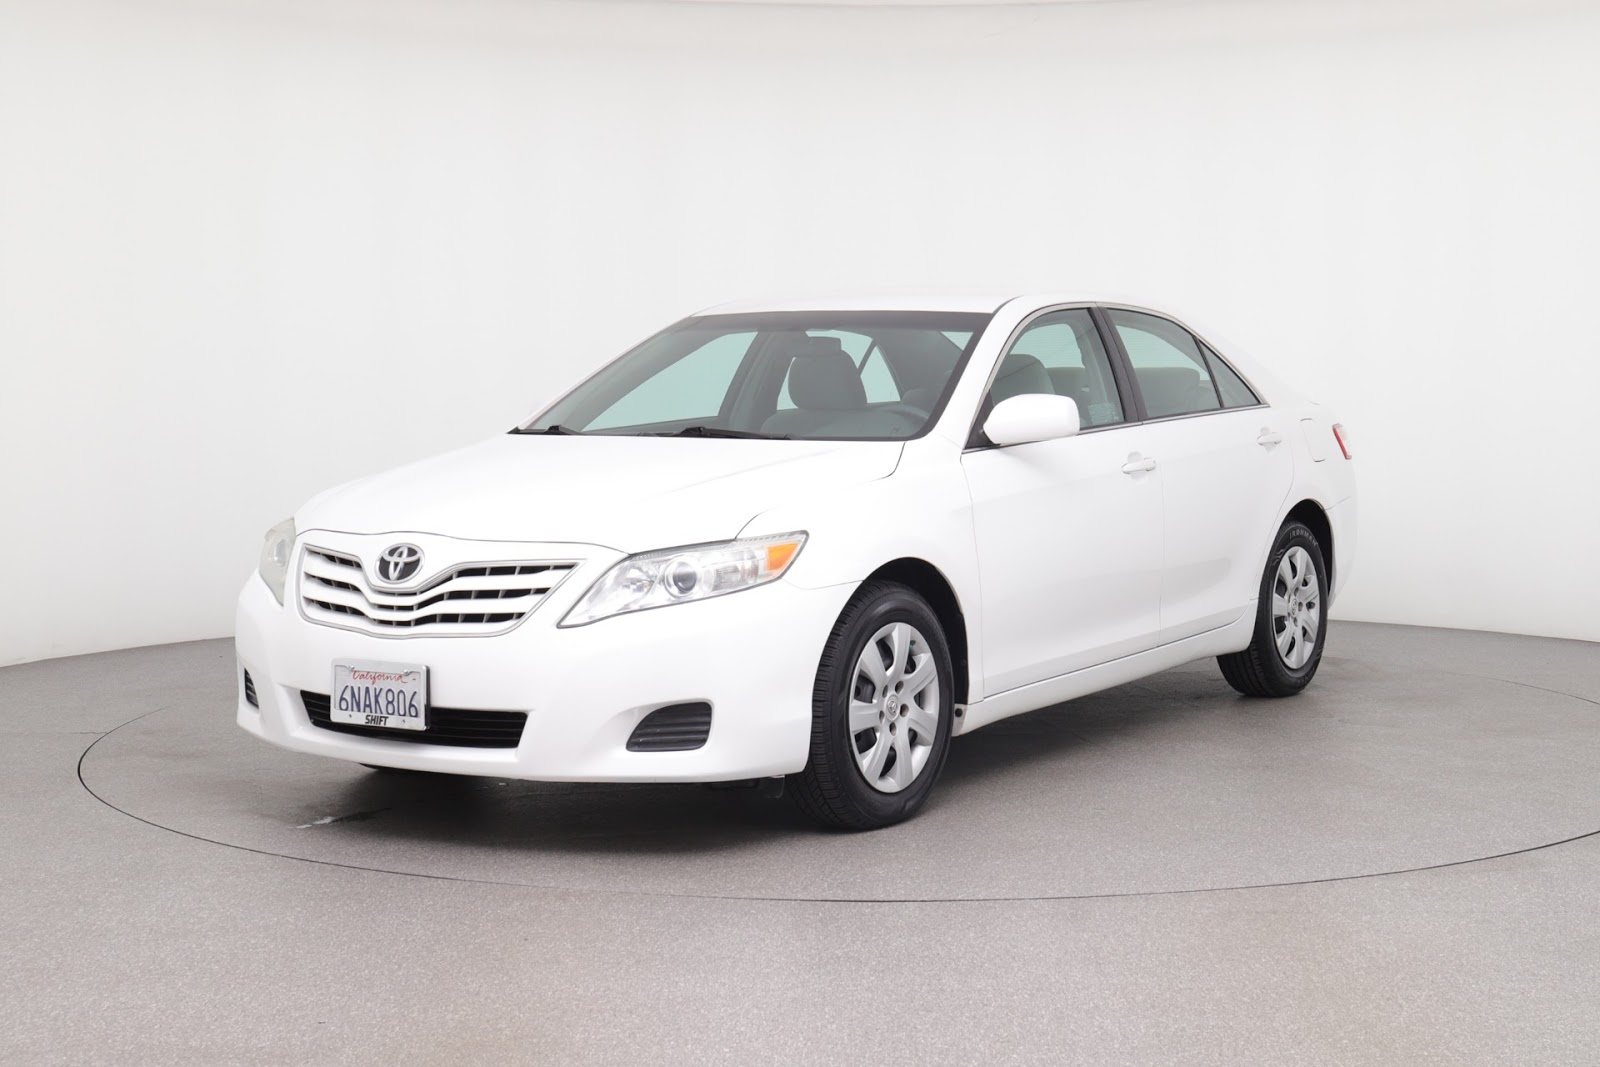 2011 Toyota Camry (from $9,250)